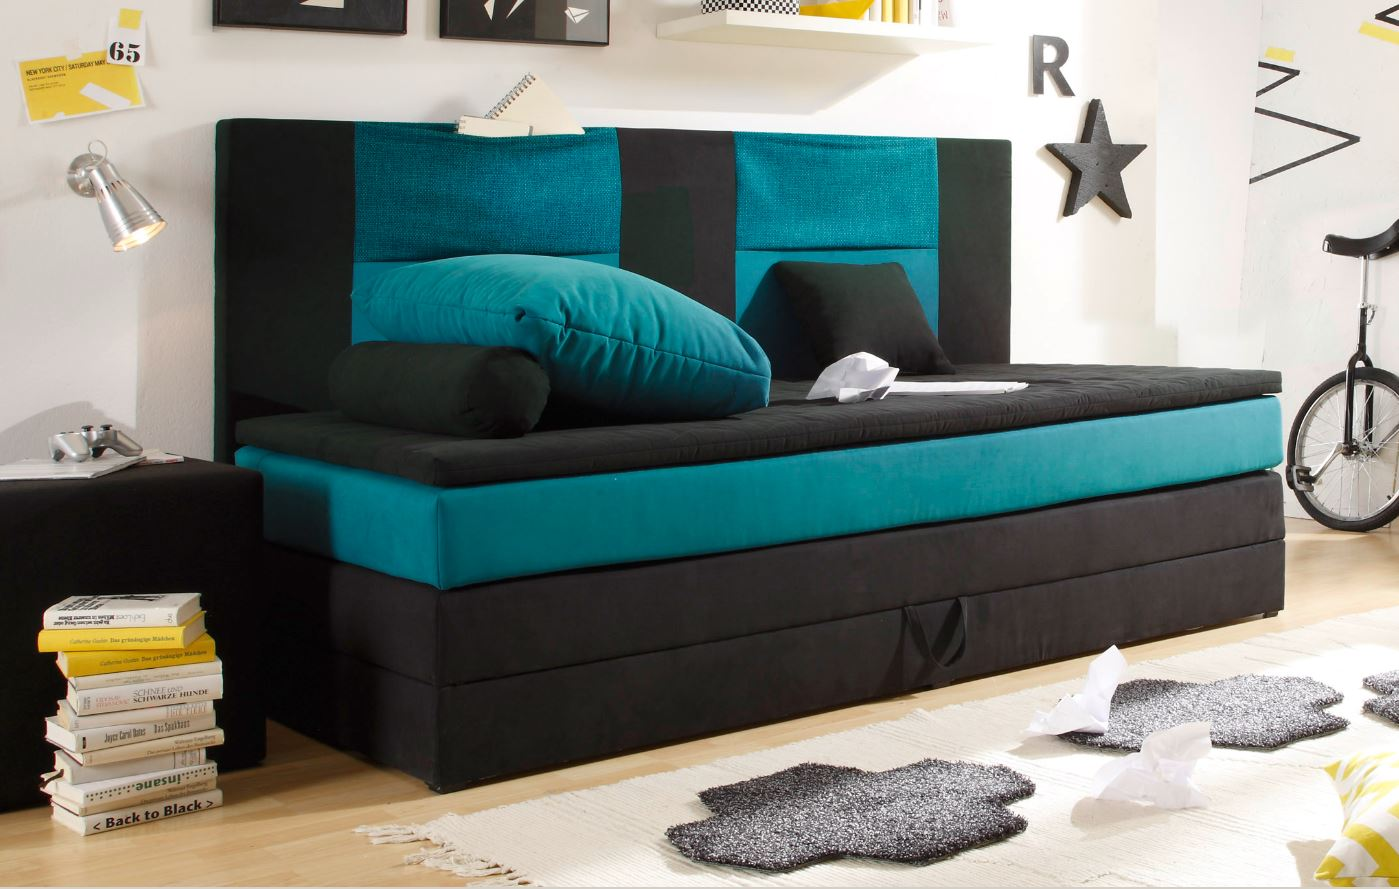 kids stripe boxspringbett mit bettkasten jugendbett 90x200 cm bett kinderbett sc ebay. Black Bedroom Furniture Sets. Home Design Ideas